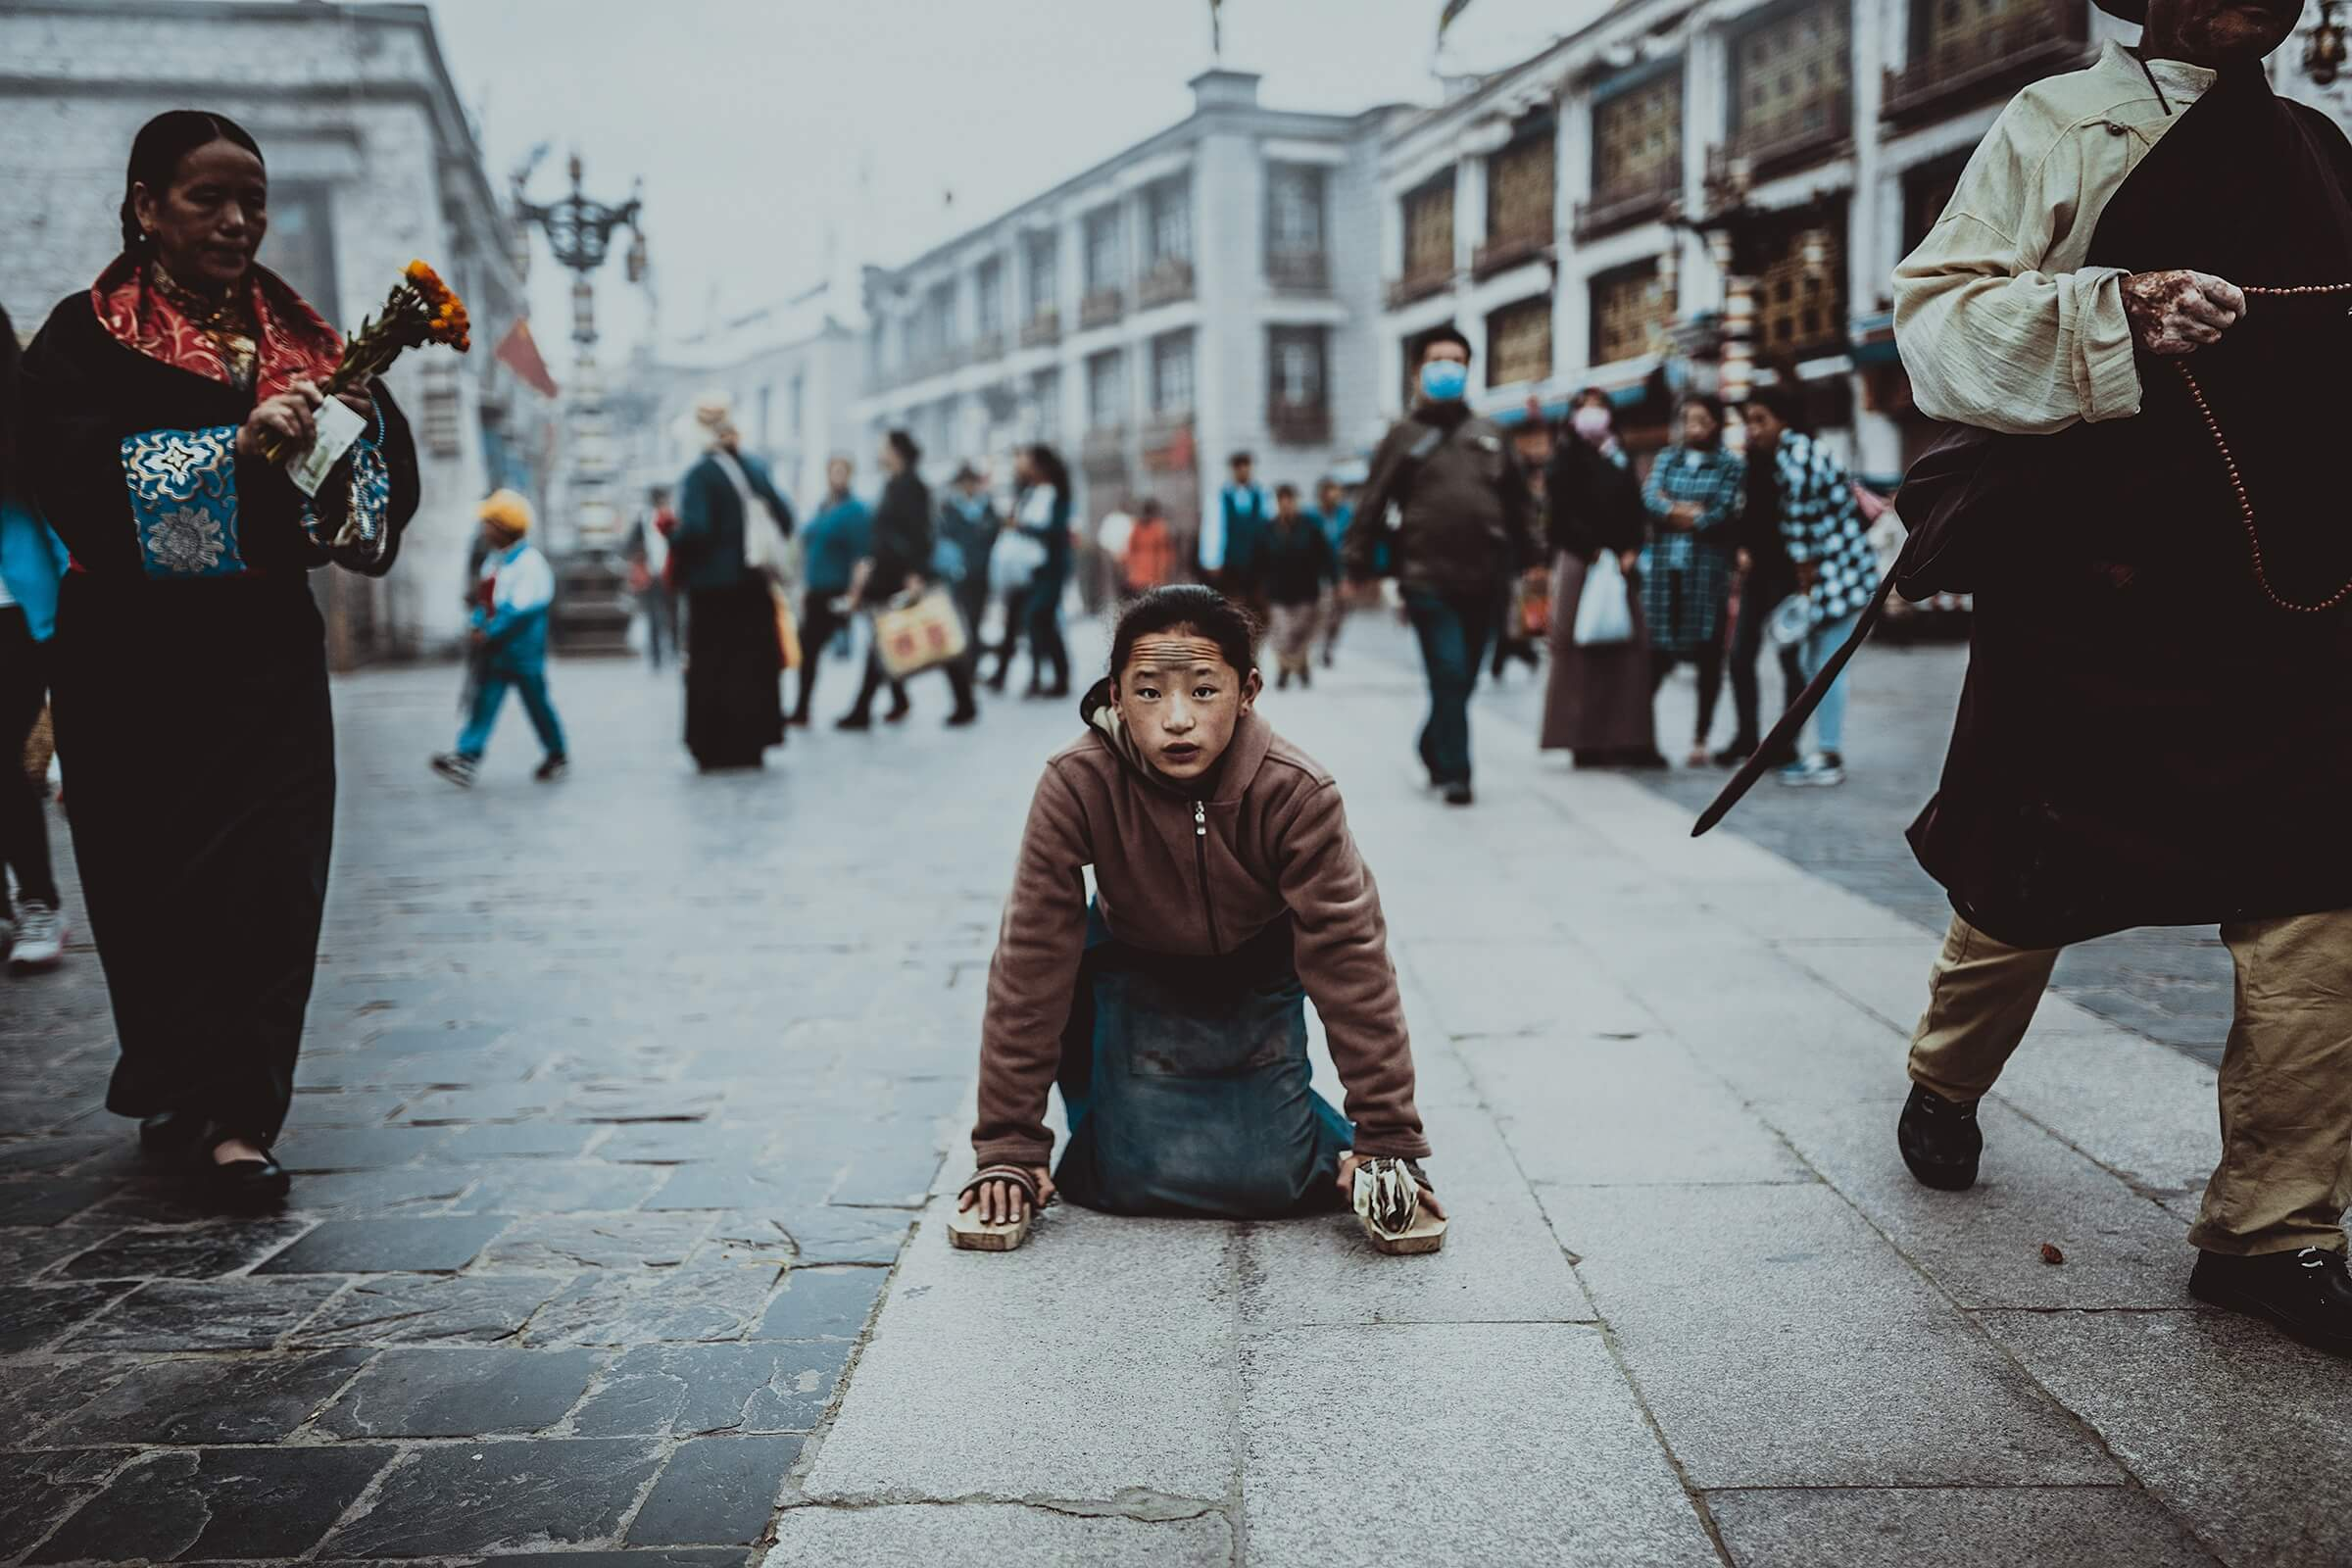 Girl Kneeling in Busy Street